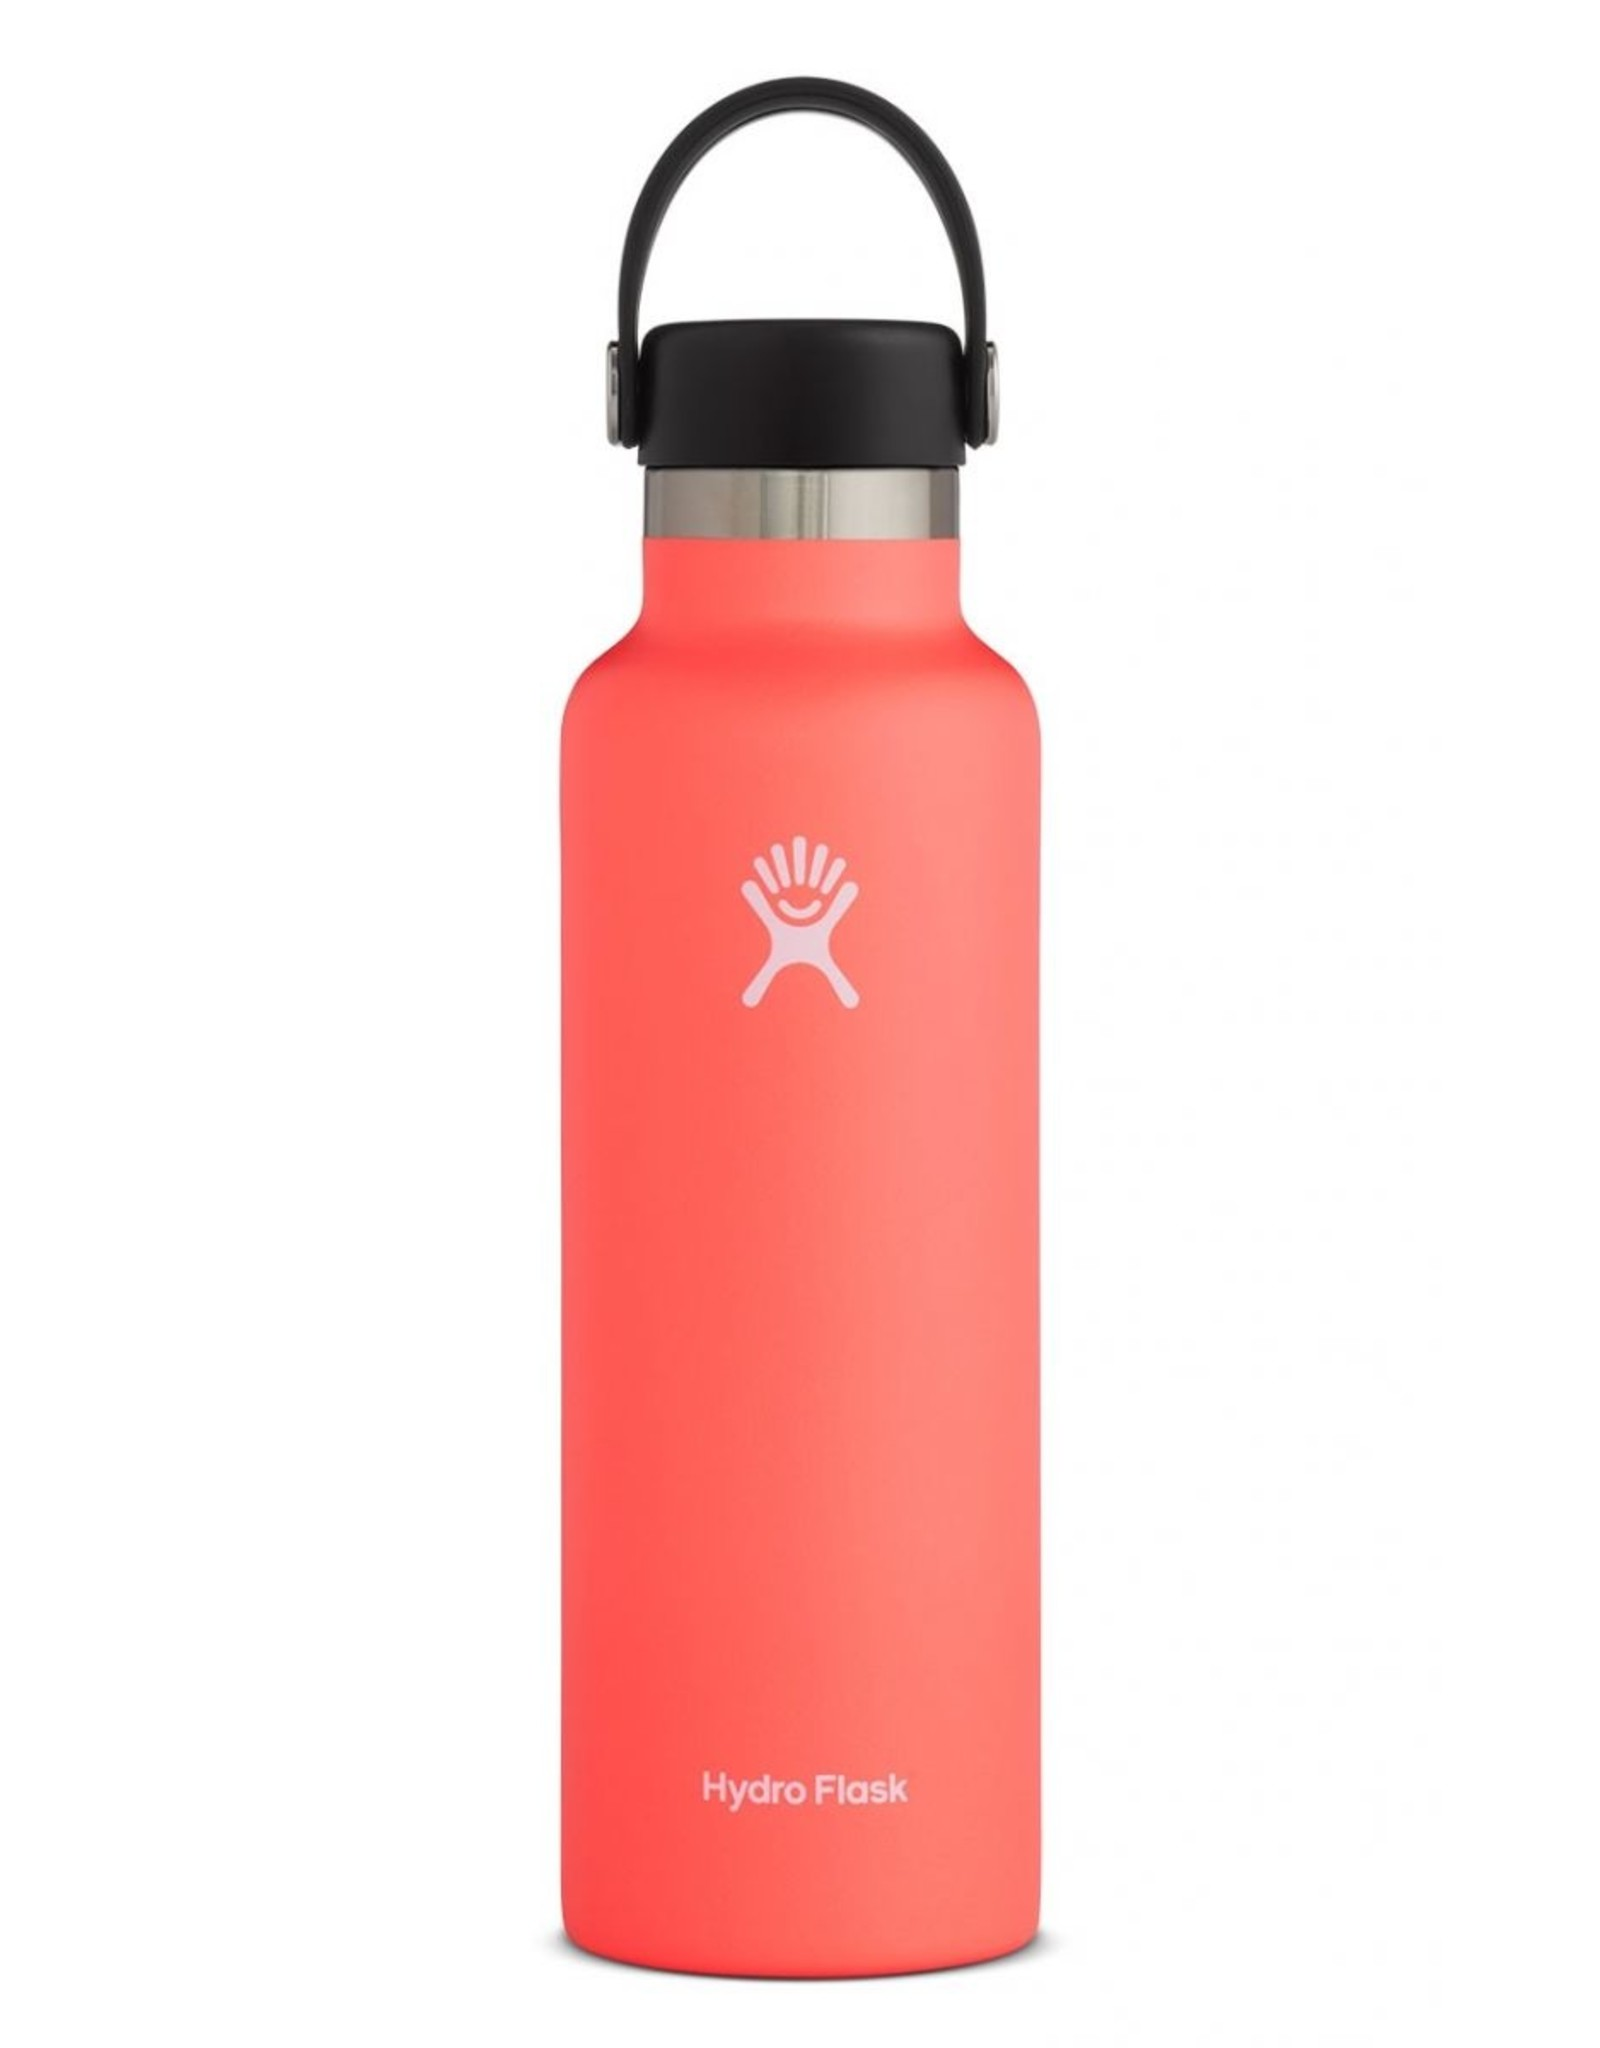 HYDRO FLASK HYDRO FLASK 21OZ STANDARD MOUTH BOTTLE-HIBISCUS